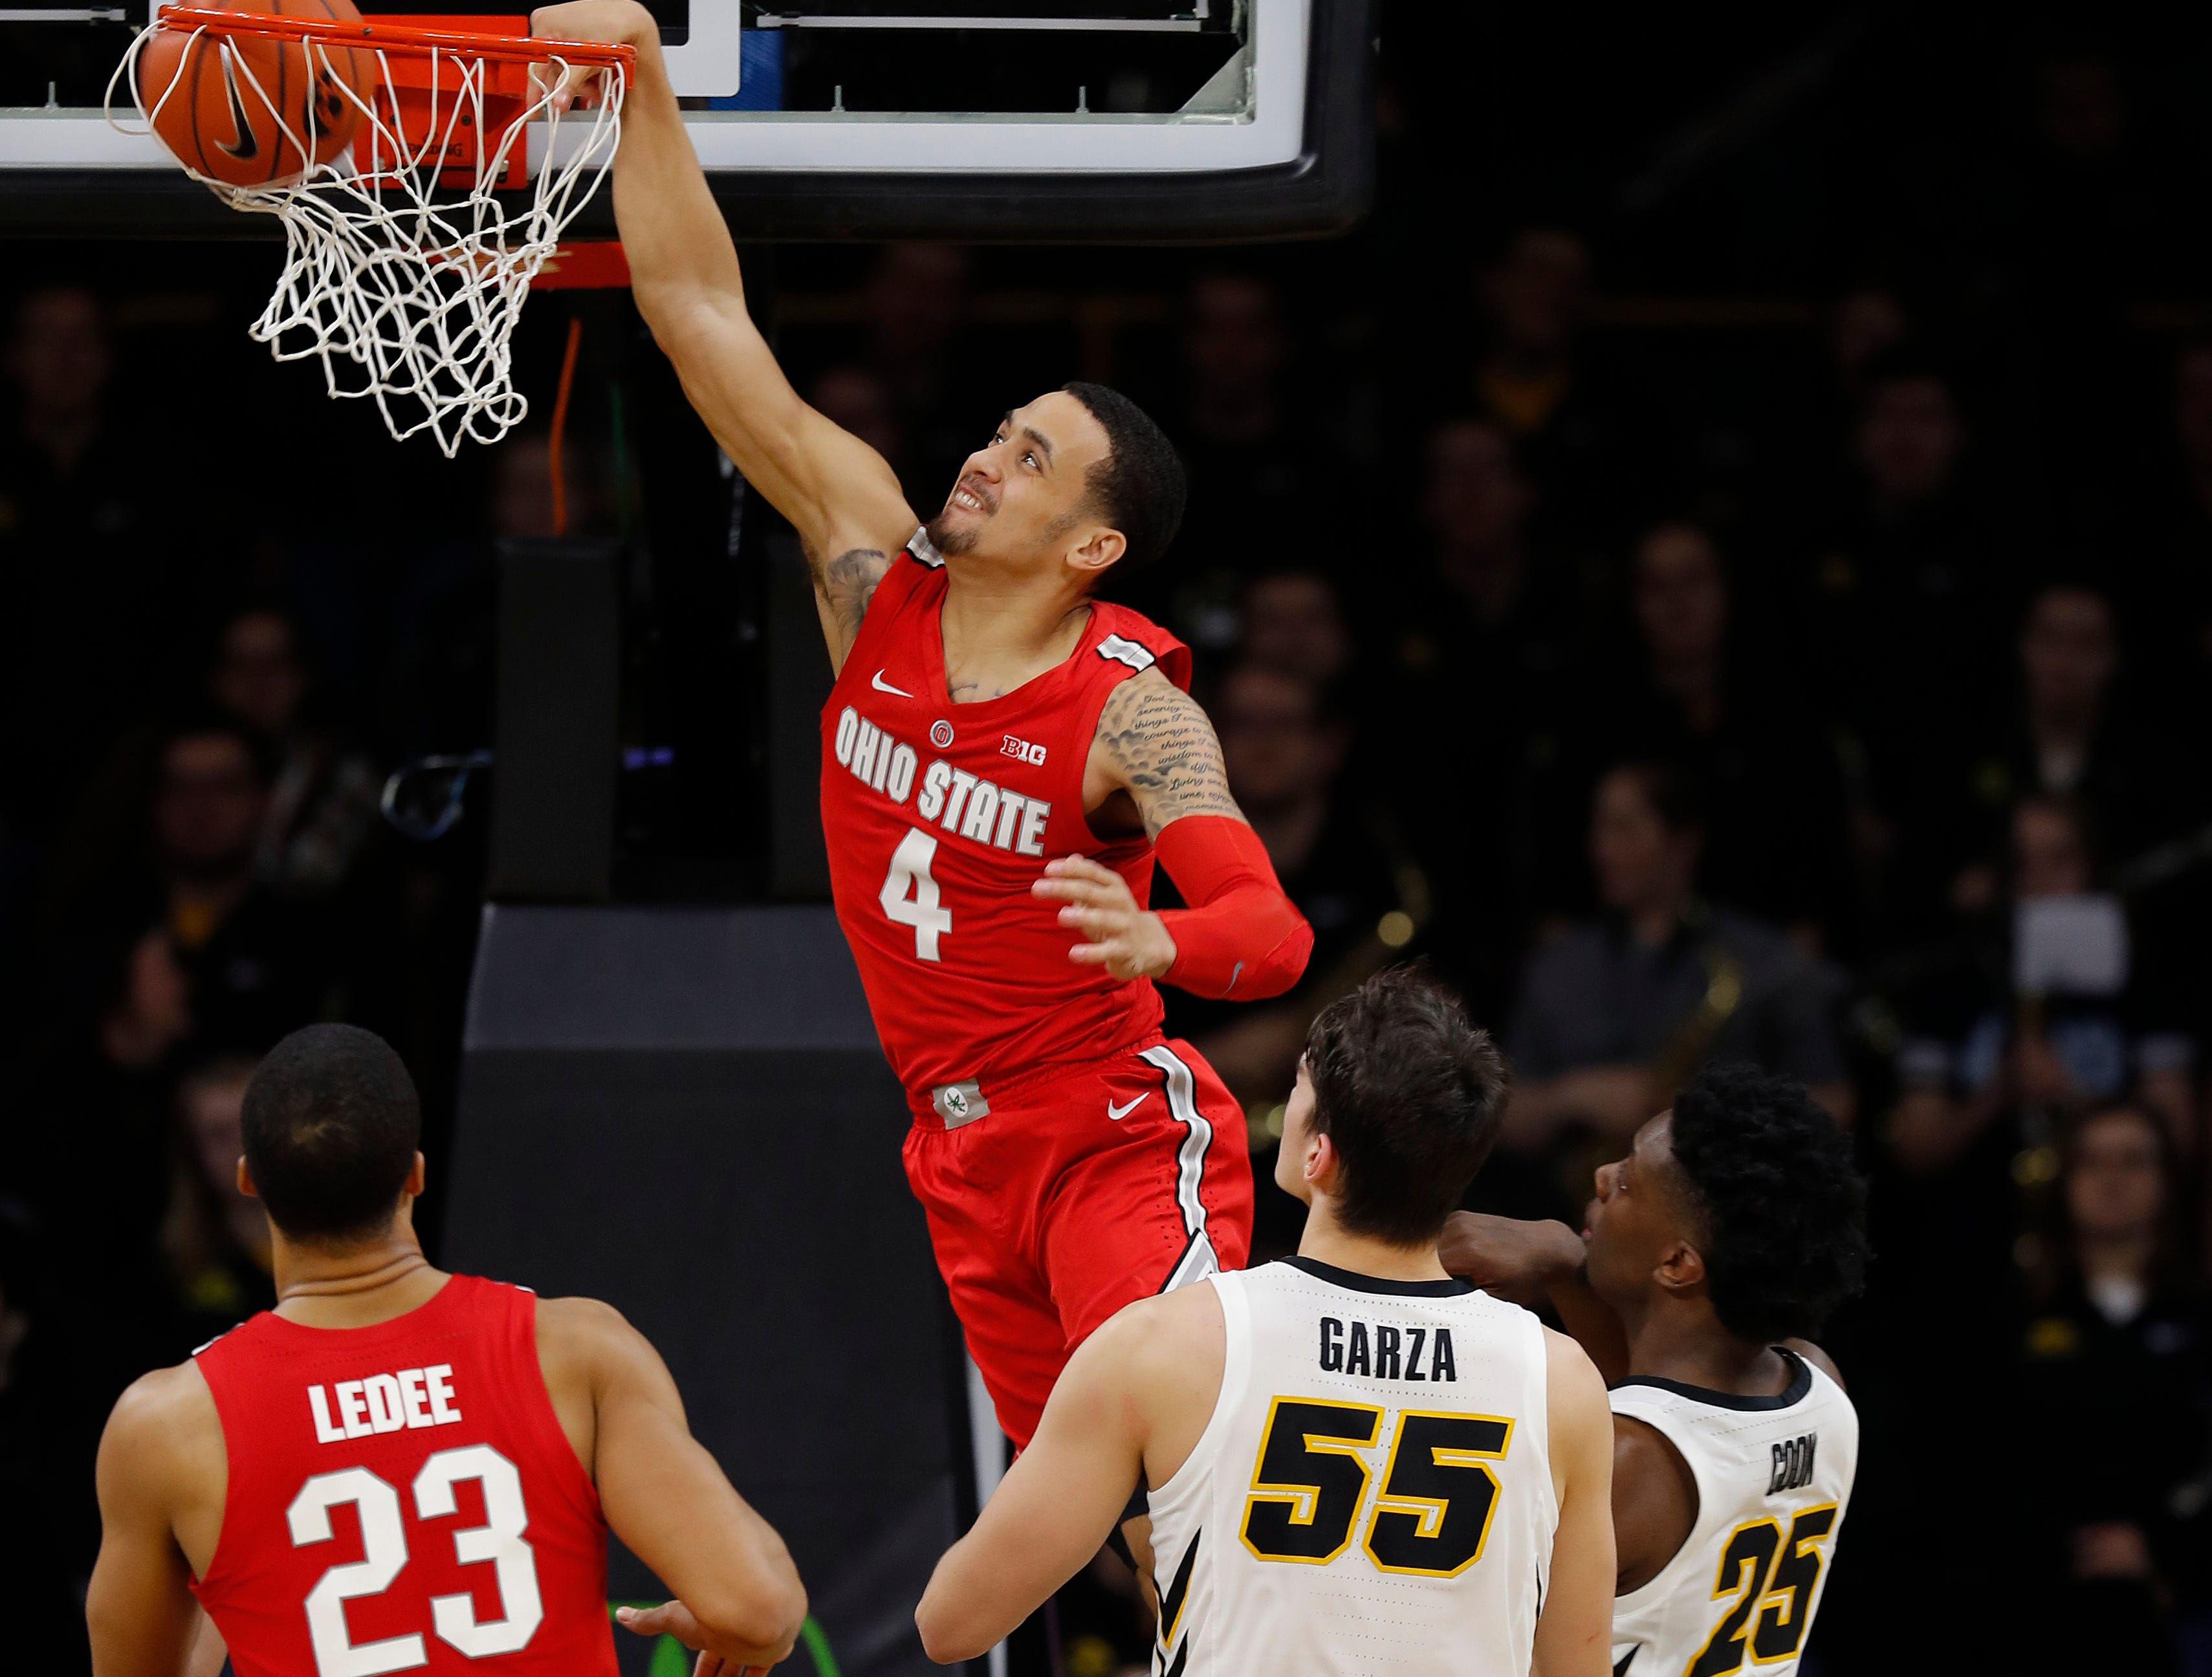 Ohio State guard Duane Washington, center, dunks during the second half of an NCAA college basketball game against Iowa, Saturday, Jan. 12, 2019, in Iowa City, Iowa. Iowa won 72-62. (AP Photo/Matthew Putney)